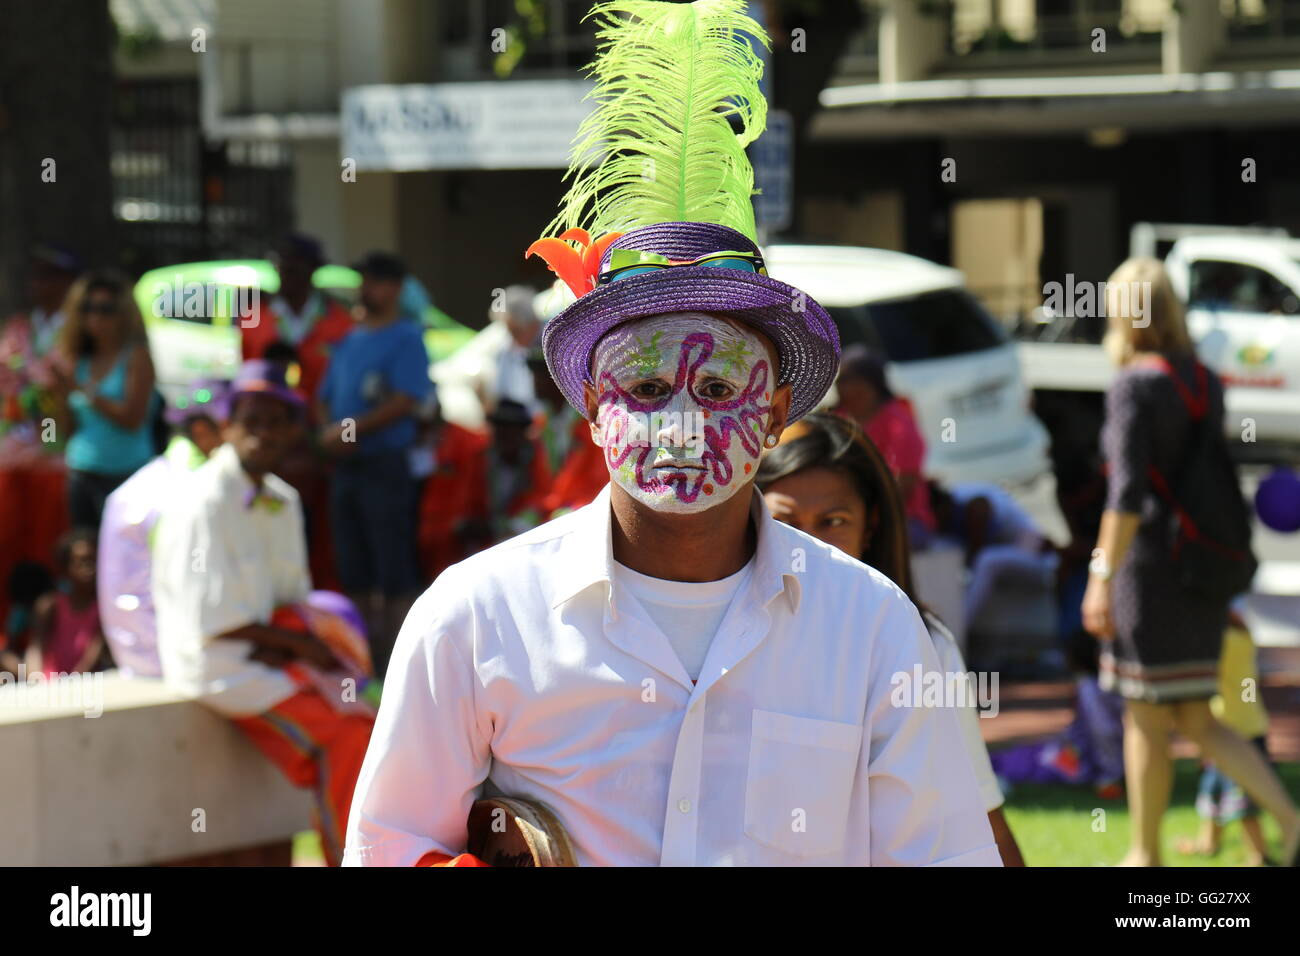 A man with face paint and a feathered hat at the 2016 Stellenbosch wine parade - Stock Image